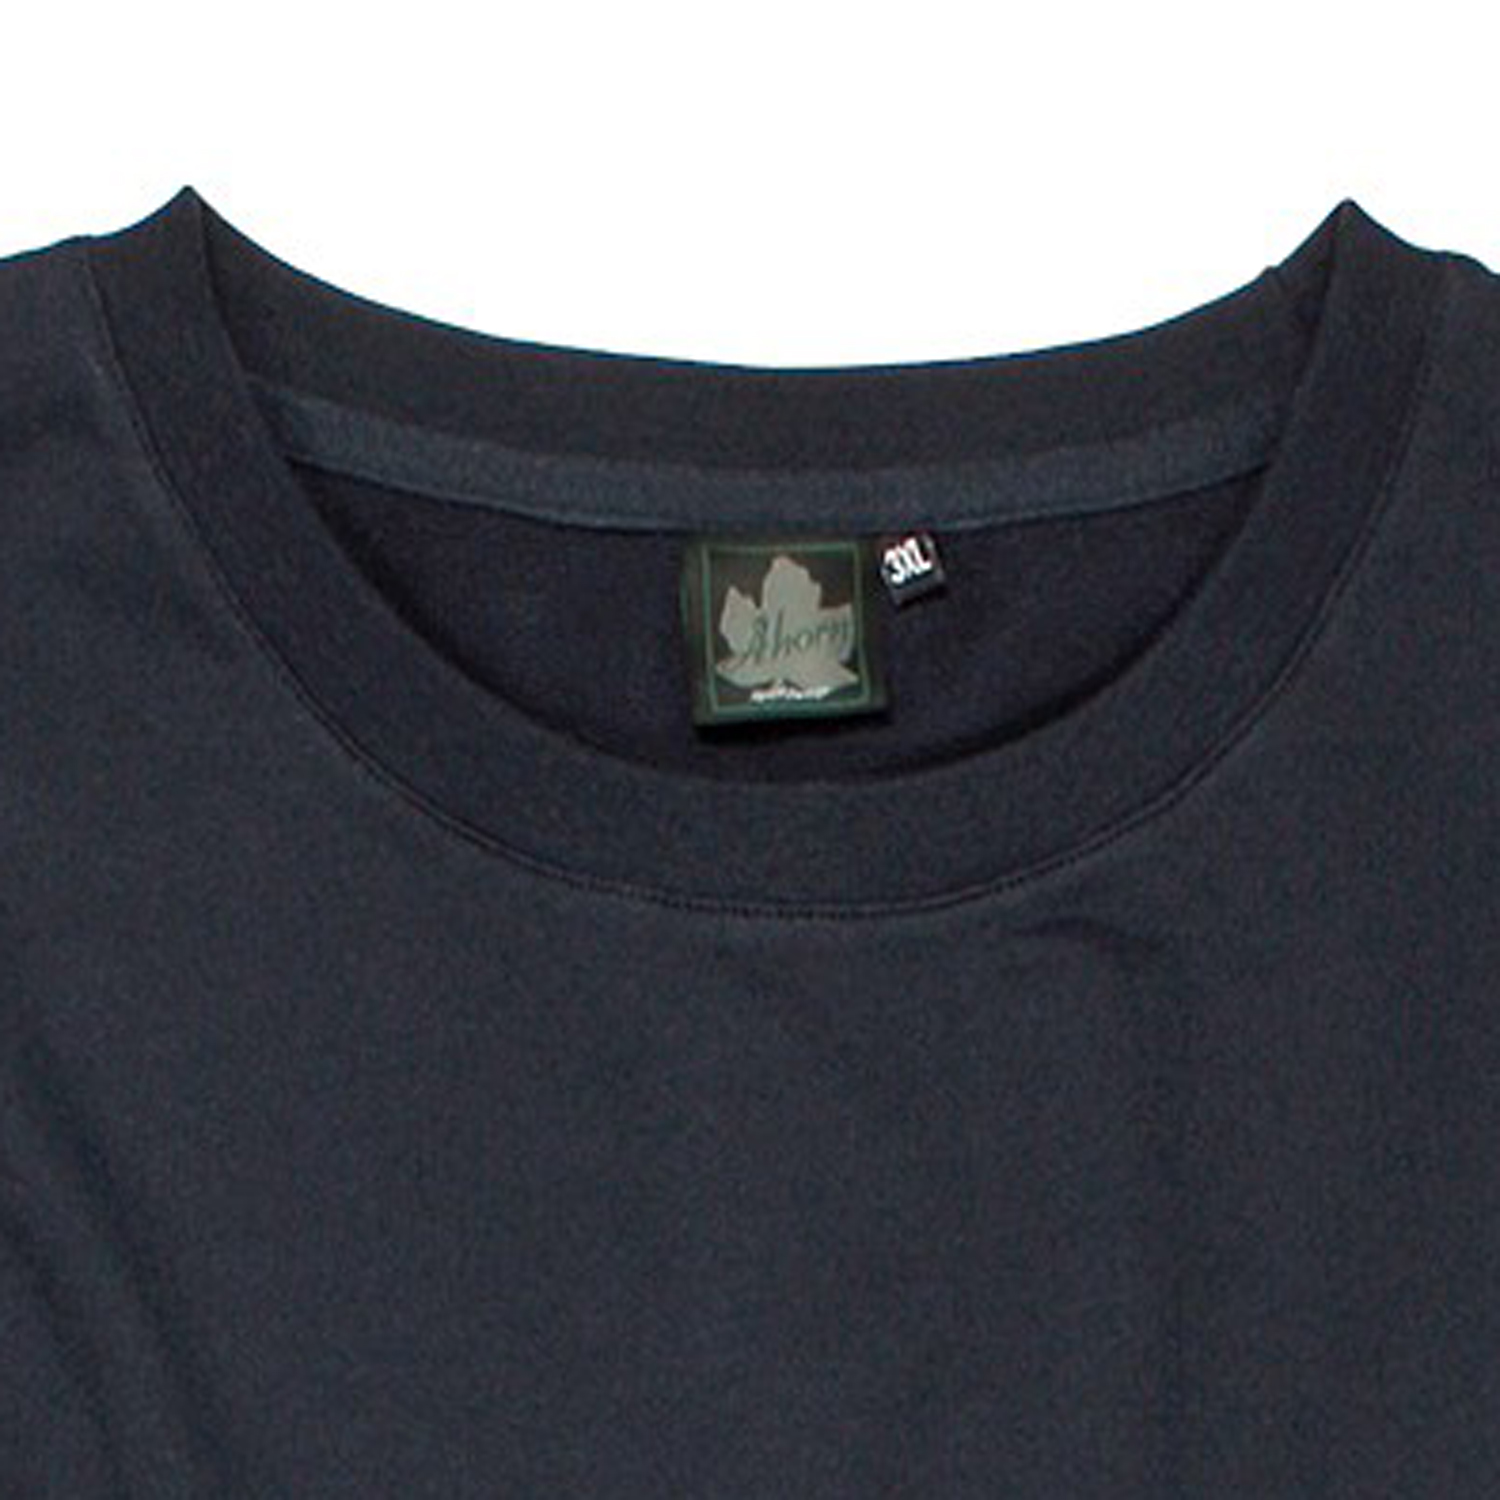 Detail Image to Sweatshirt with fine lining in dark blue by Ahorn Sportswear up to oversize 10XL